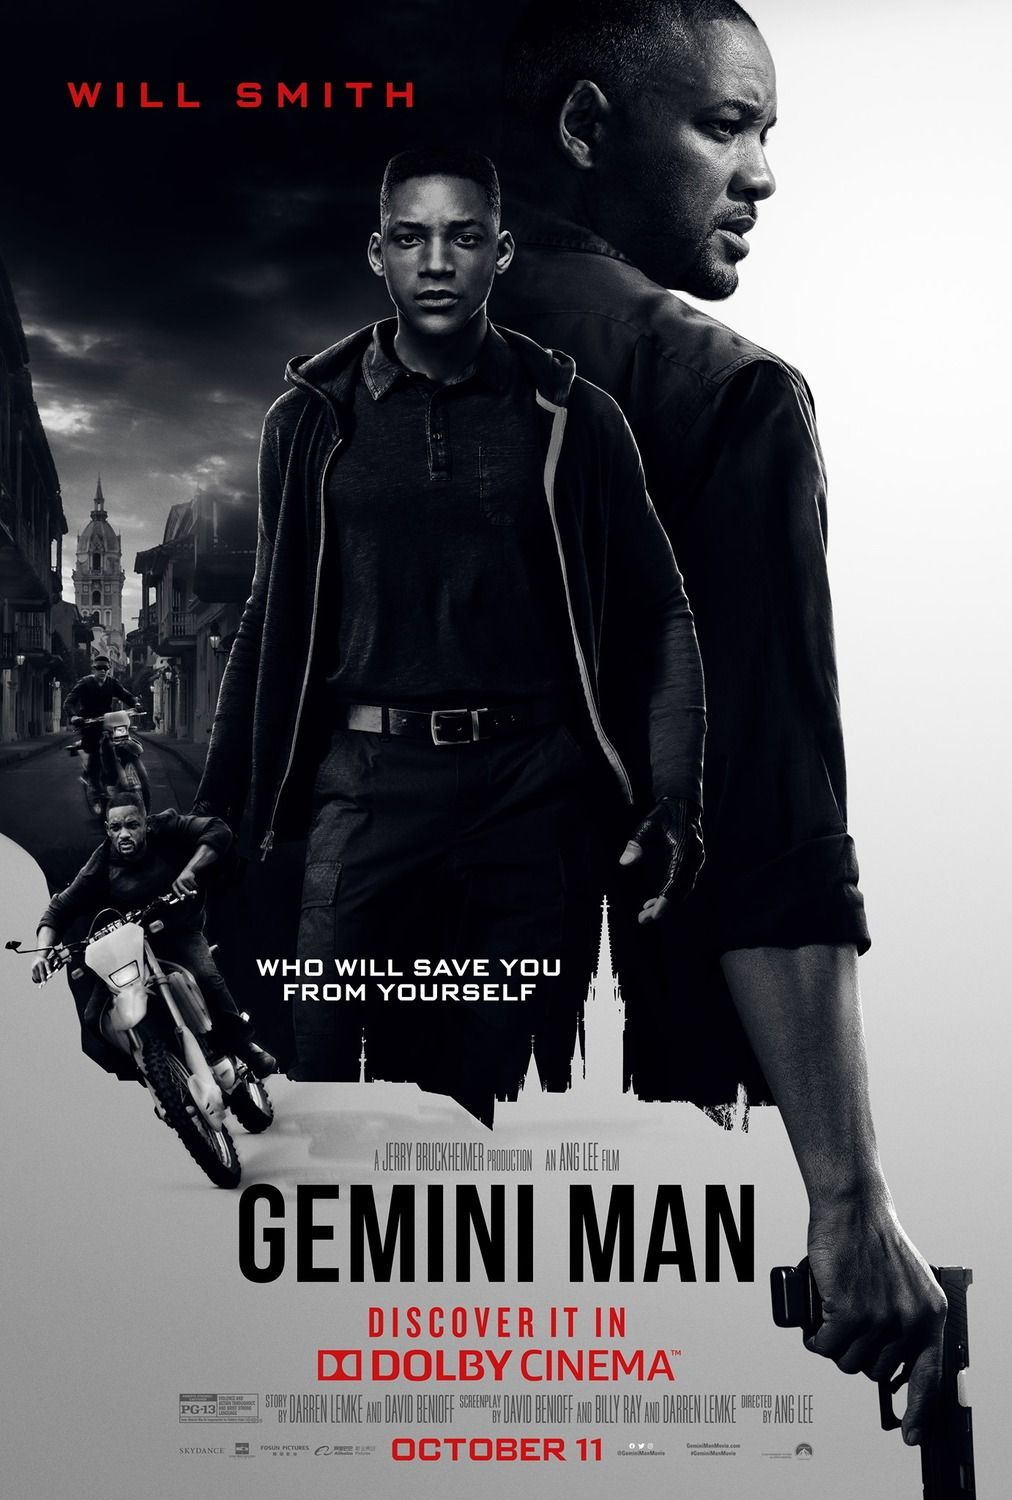 42 List Of Best Movie Posters 2019 Design With Red Gemini Man Man Movies Best Movie Posters